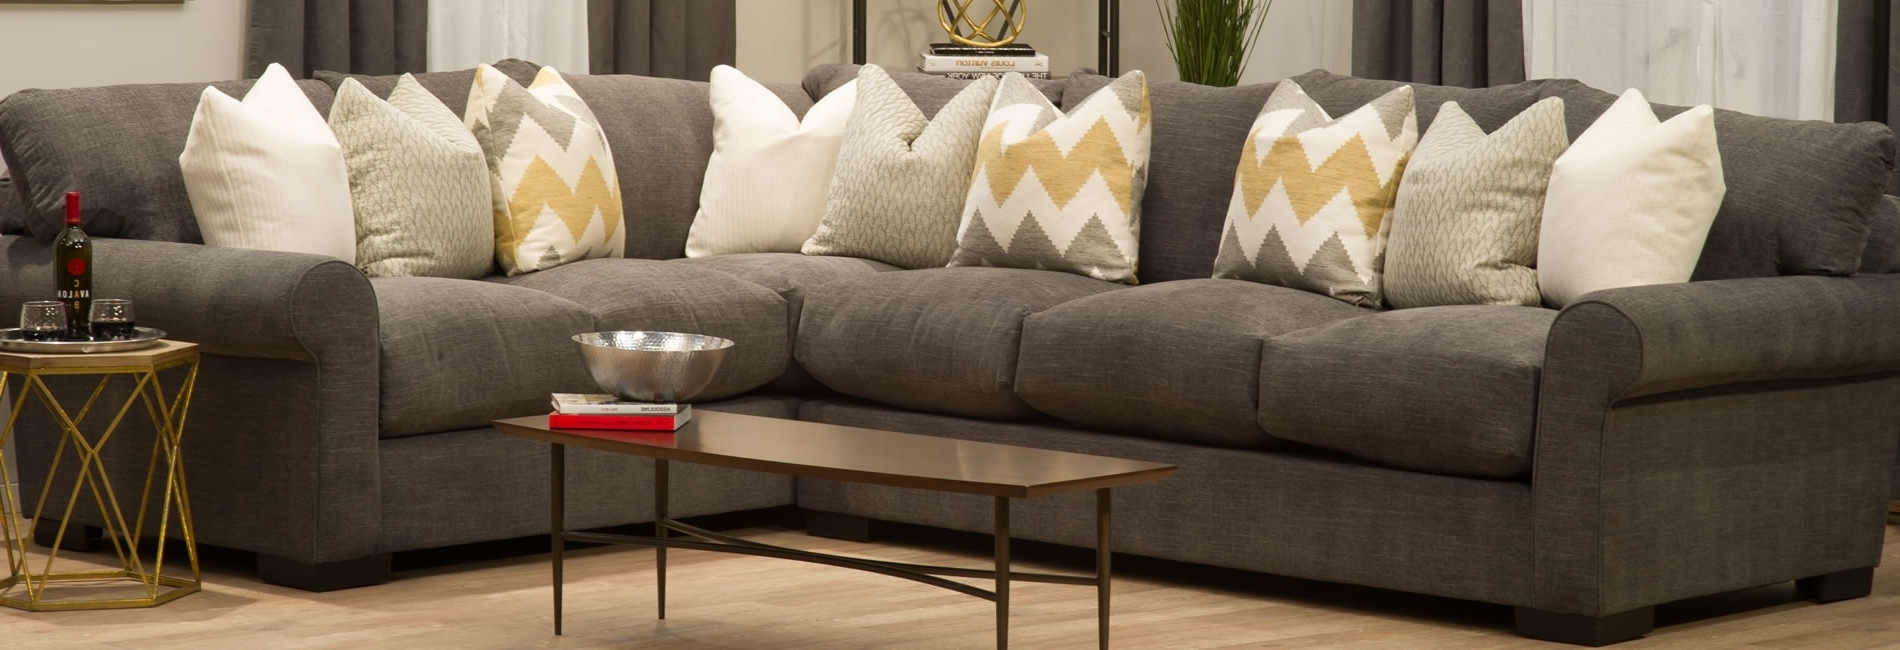 Sectional Sofas In Atlanta Regarding Favorite Collection Sectional Sofas Atlanta Ga – Buildsimplehome (View 11 of 15)